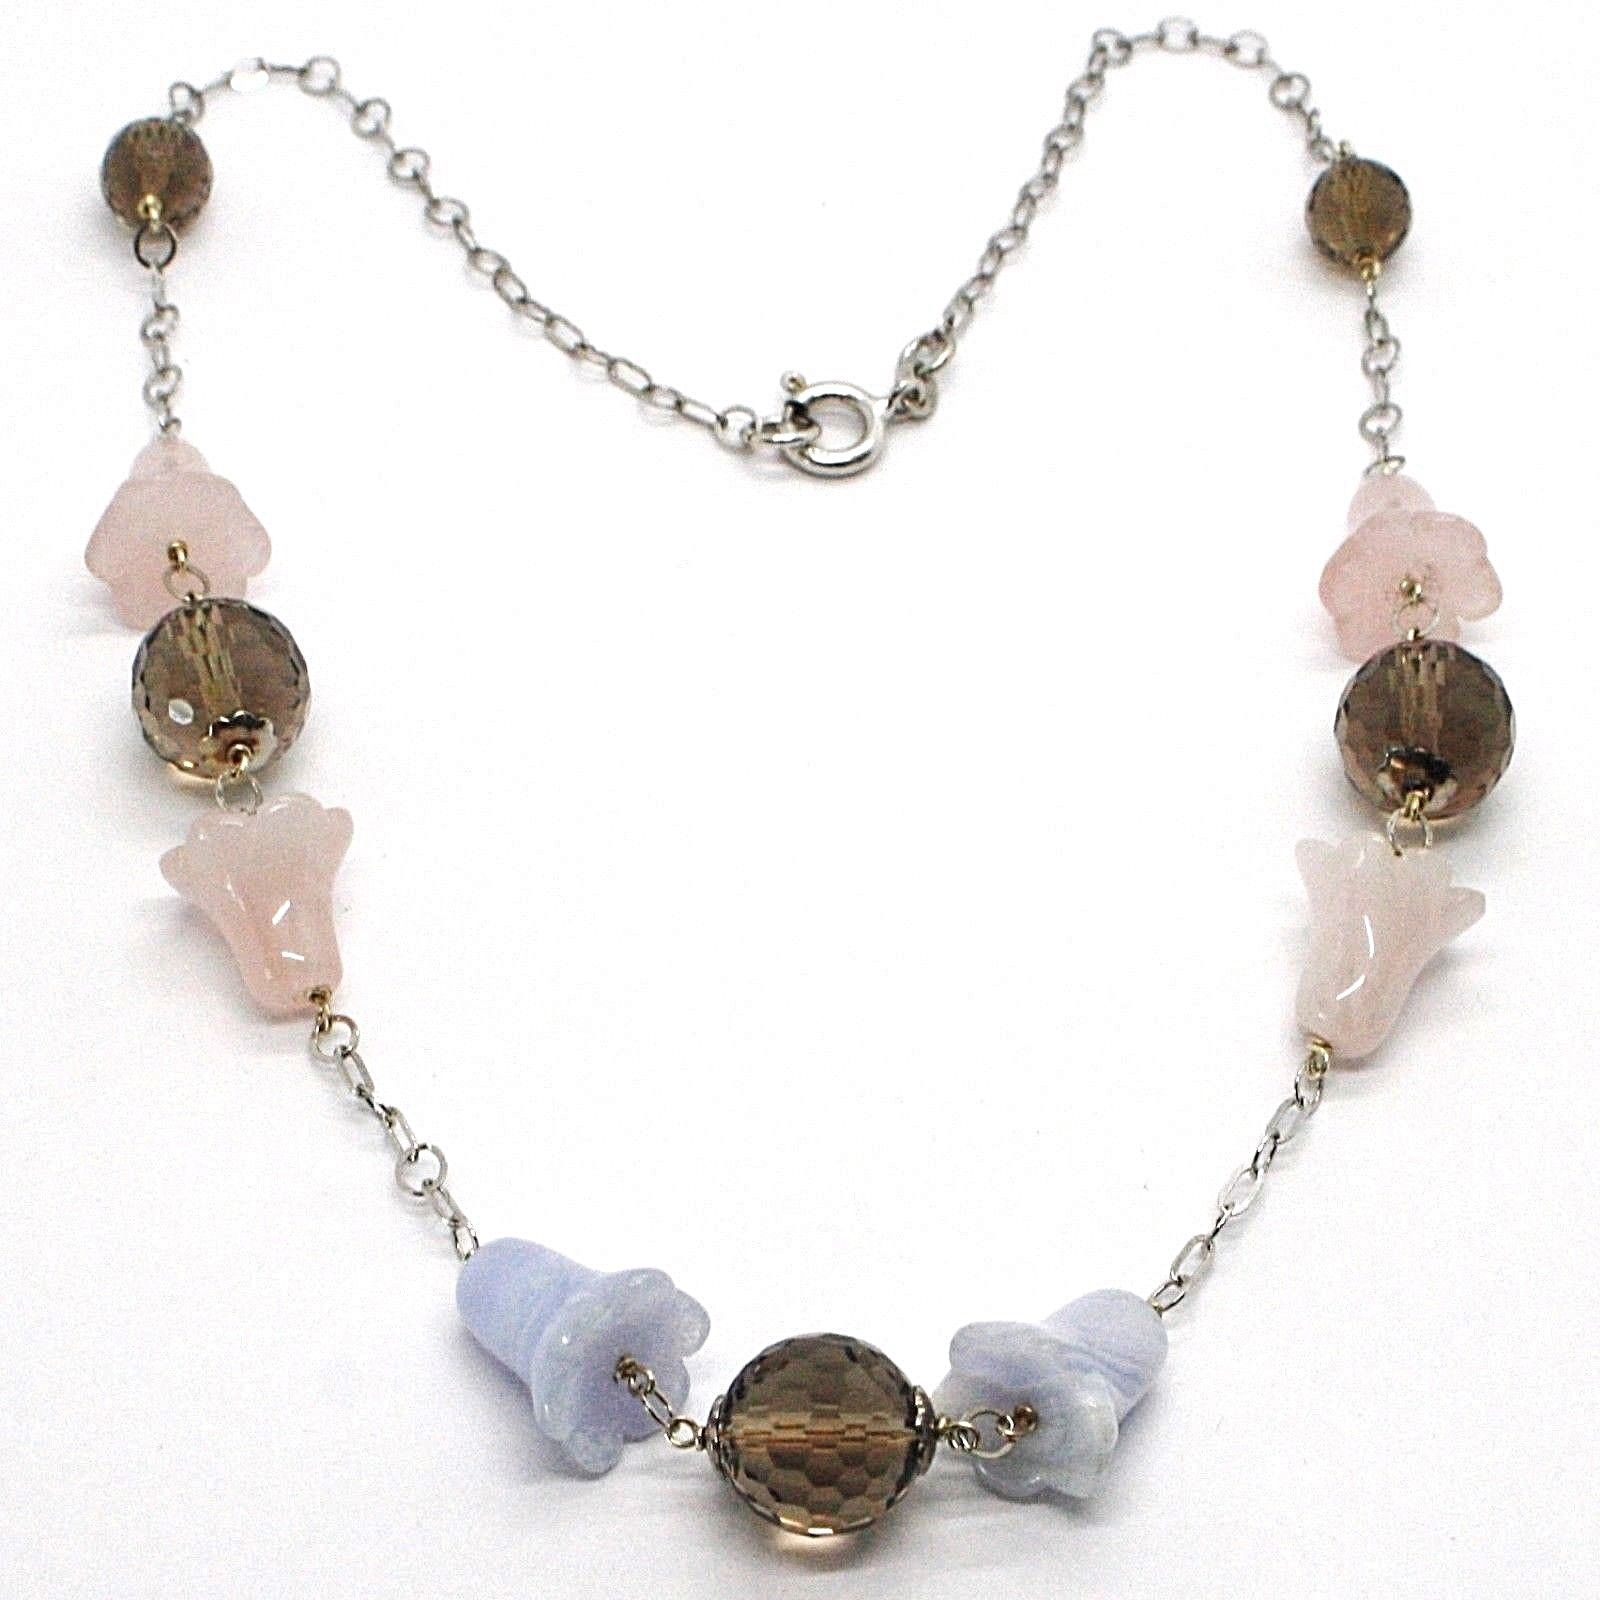 SILVER 925 NECKLACE, BLUEBELLS, FLOWERS, BELLS, PINK QUARTZ, CHALCEDONY